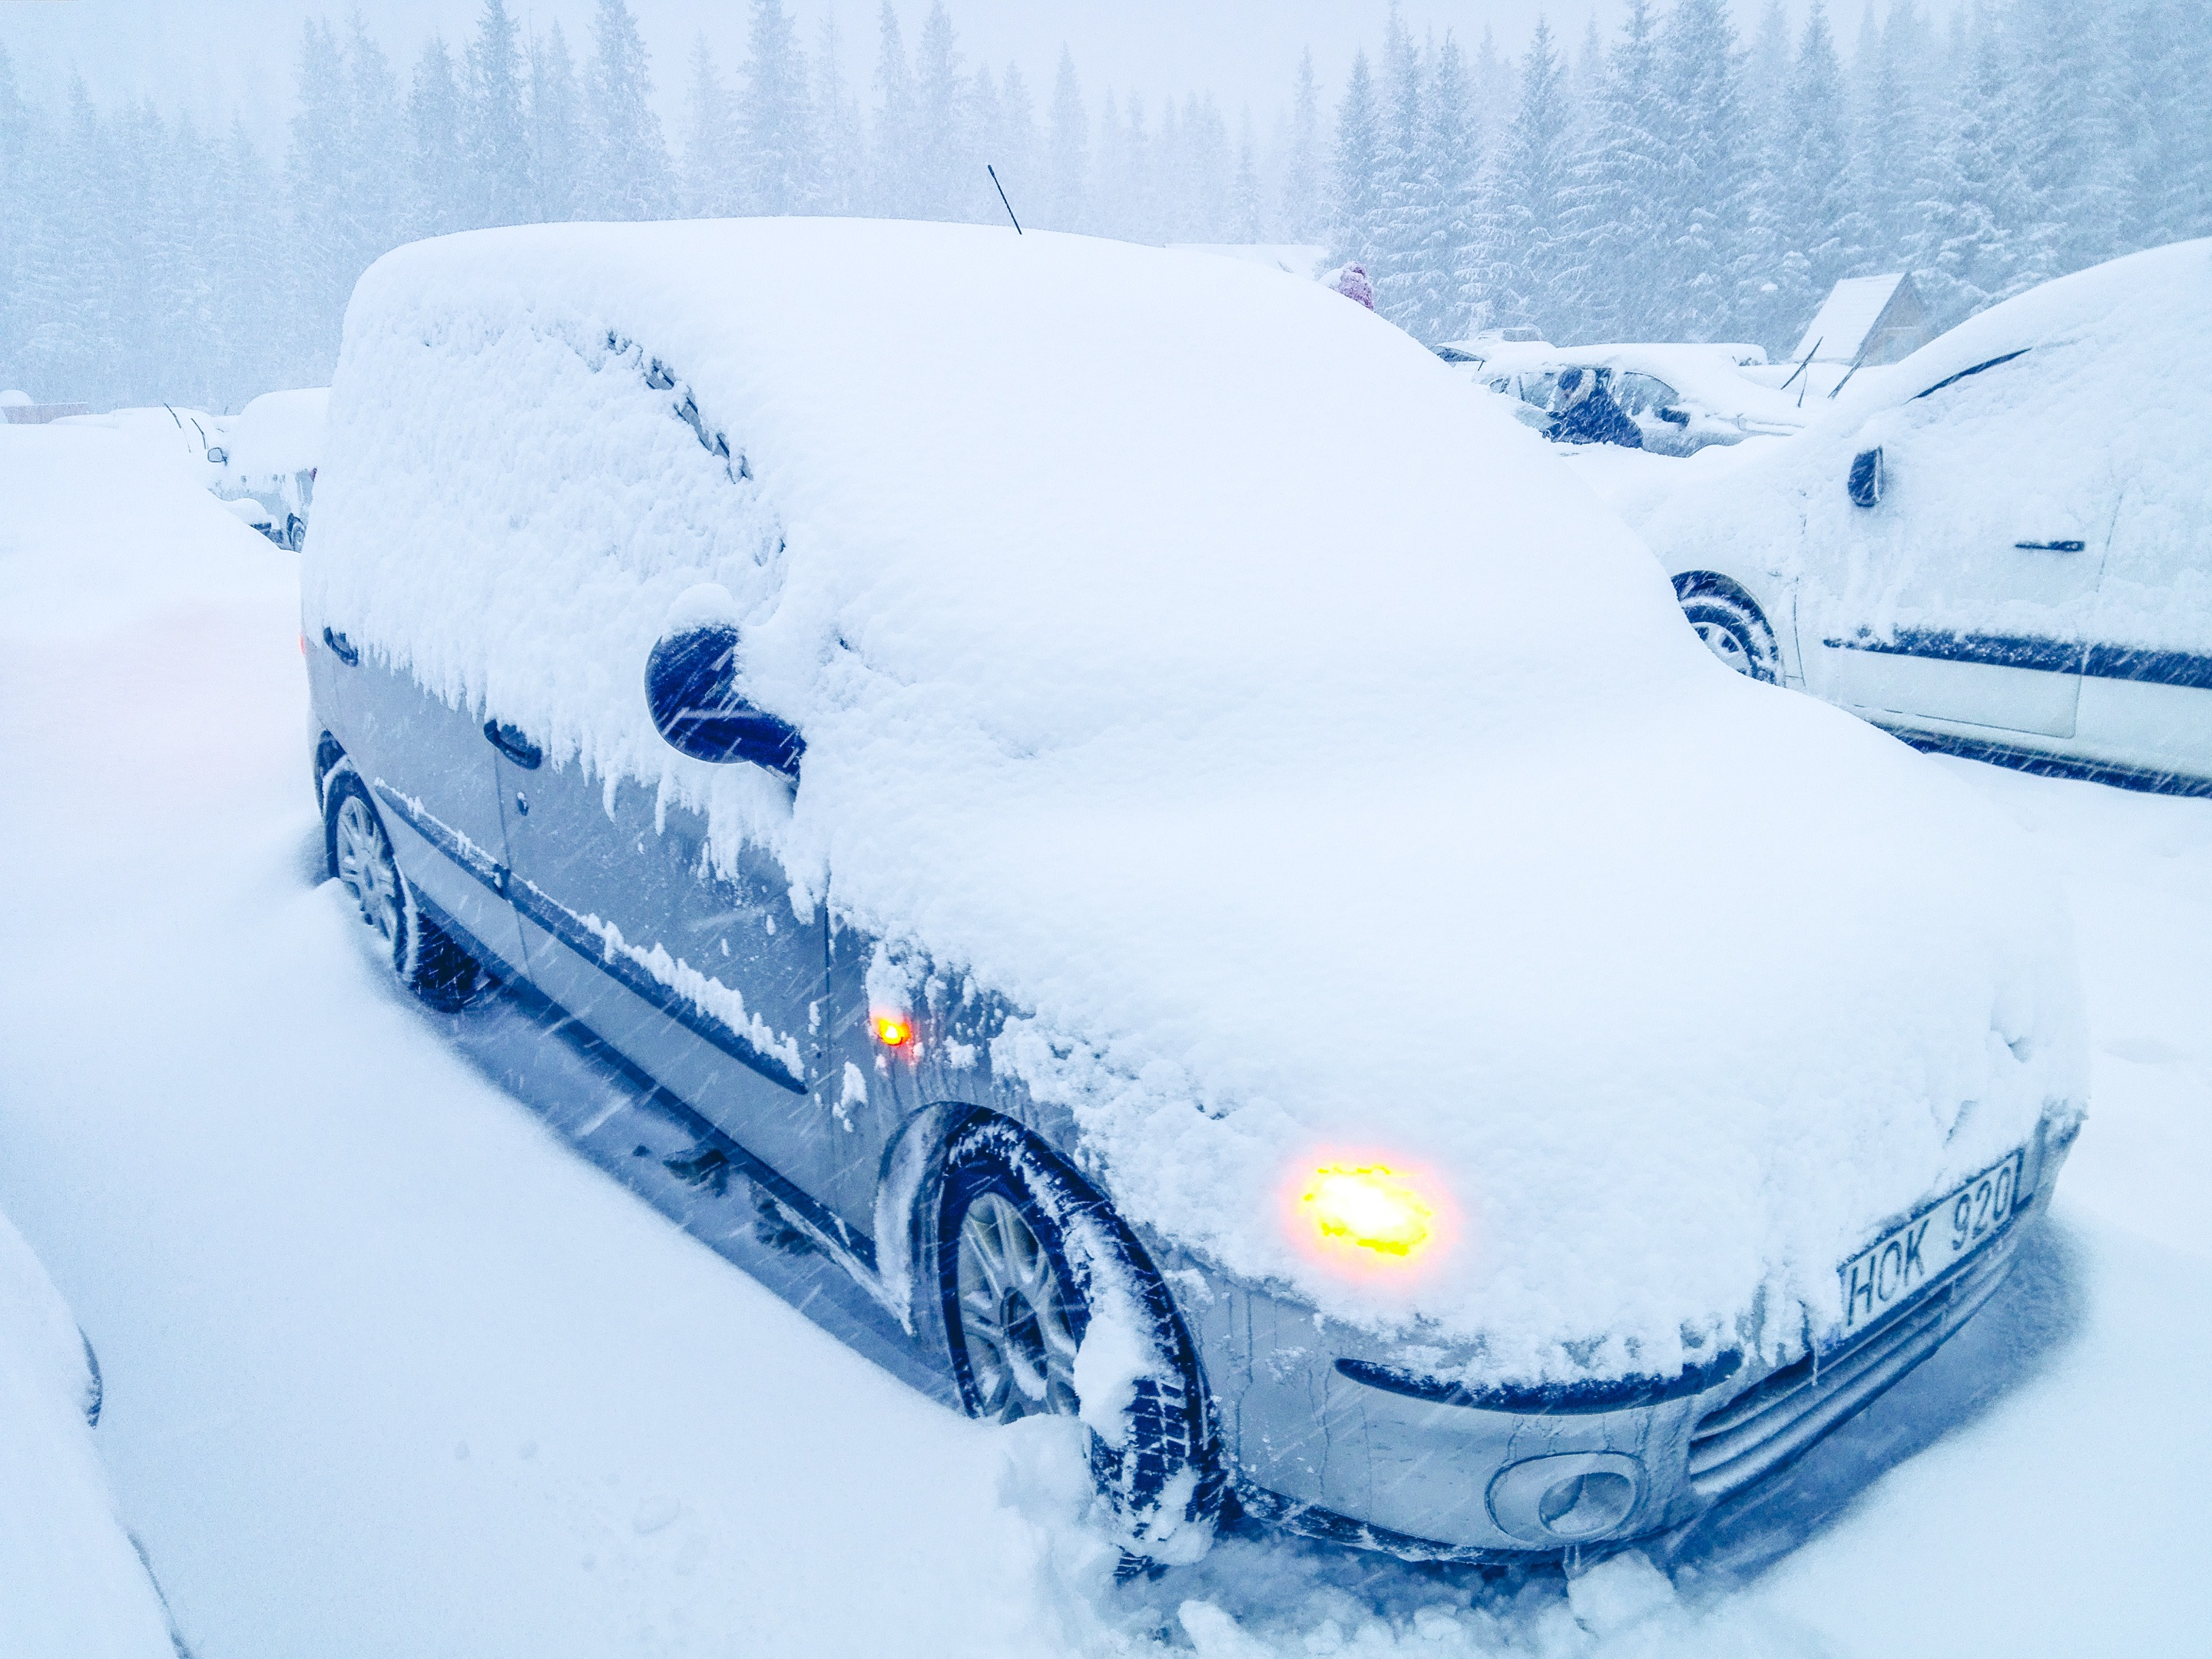 Our car after going for a winter hike to Morskie Oko, Poland. Photo by Alis Monte [CC BY-SA 4.0], via Connecting the Dots